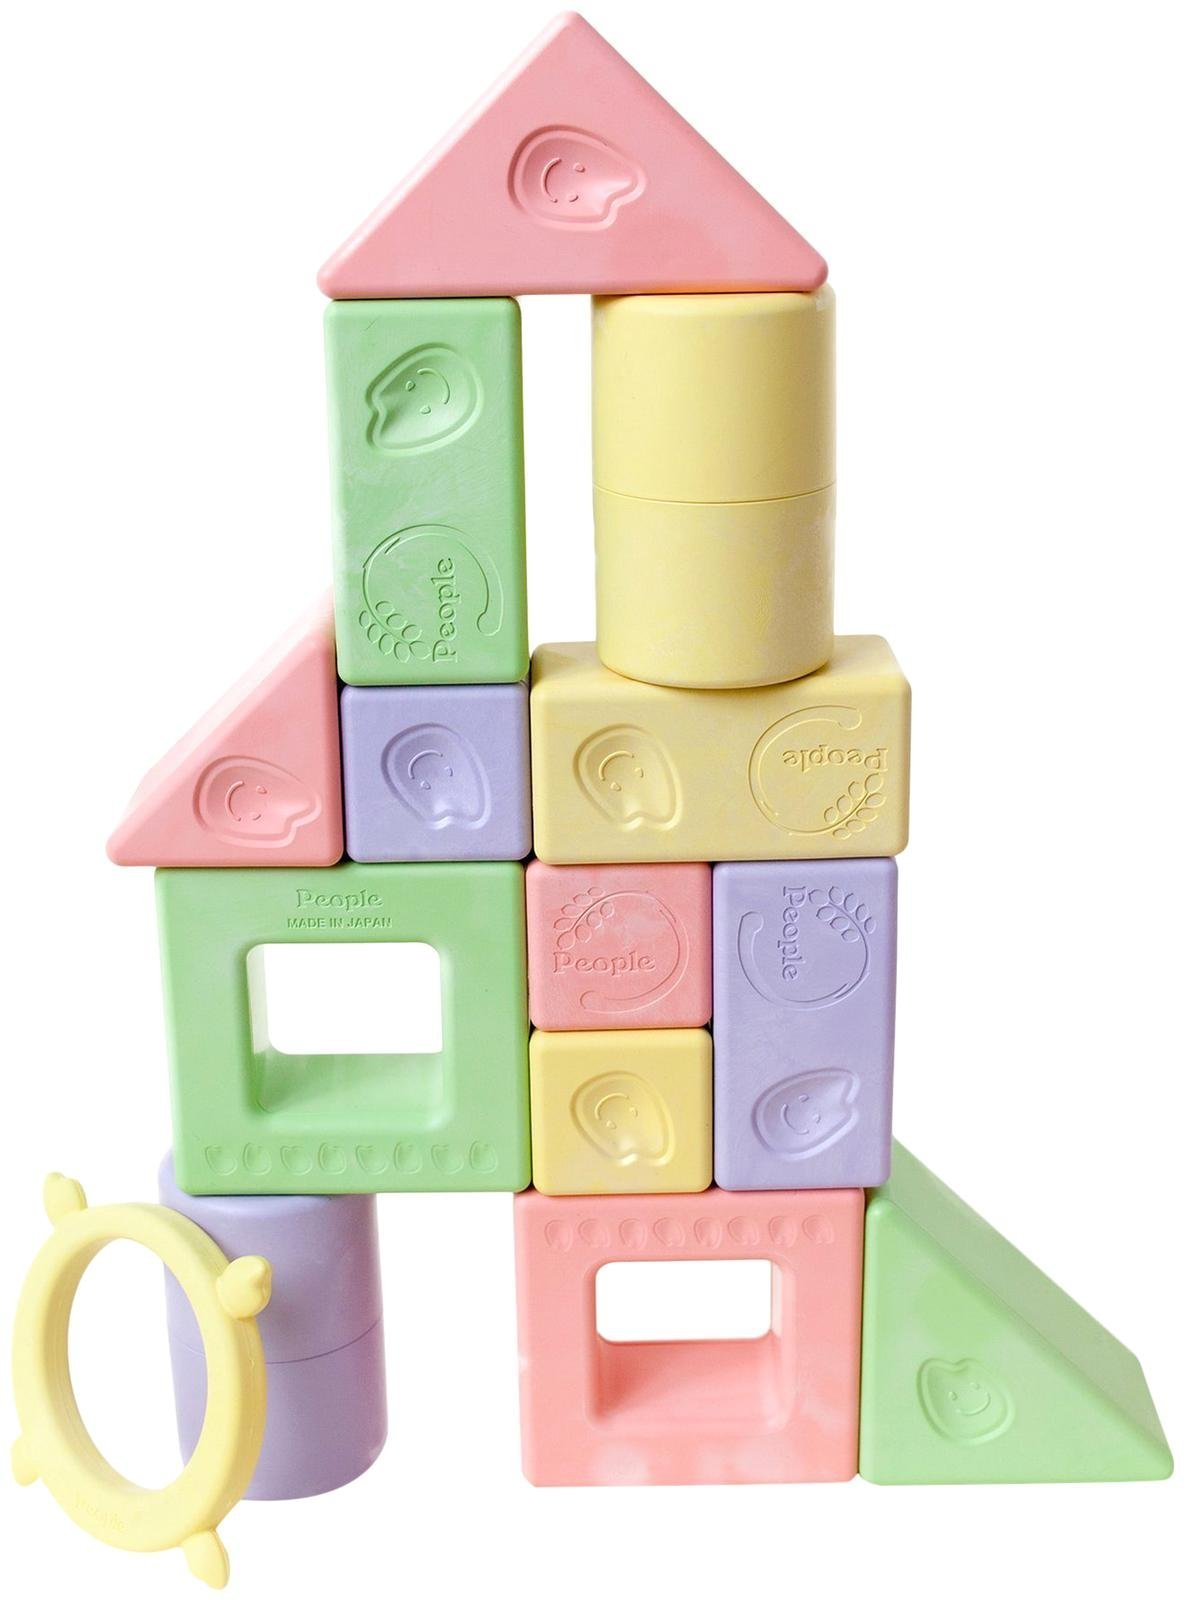 People Mochi Blocks 28 Piece Premium Set